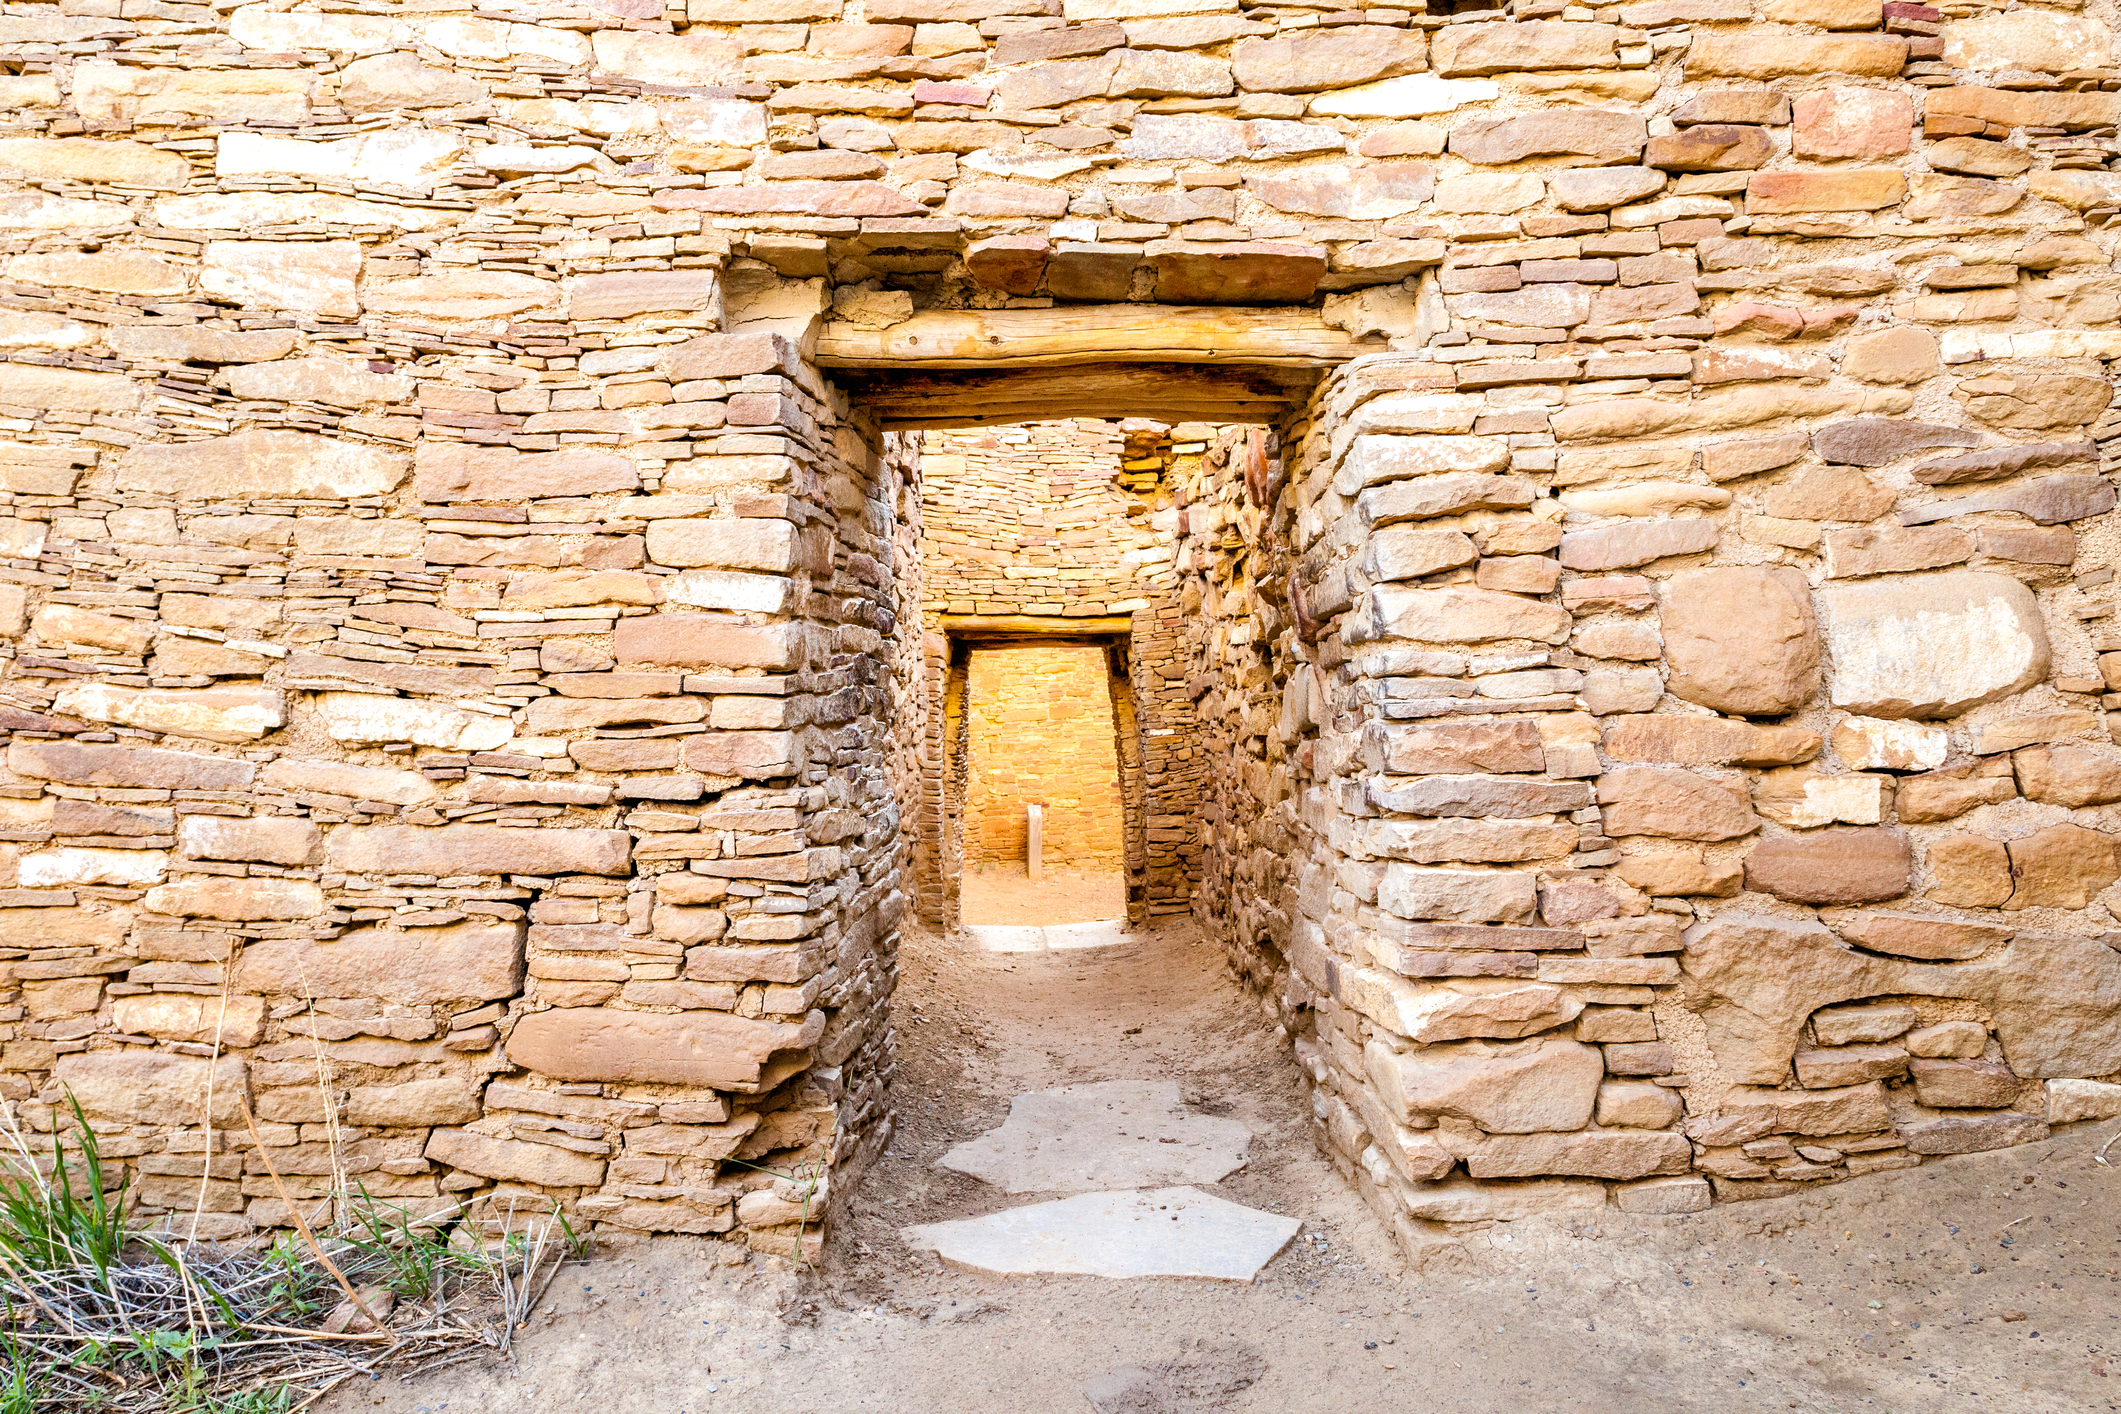 New-Mexico-Chaco-Culture-National-Historical-Park ▷ 10 sitios únicos del Servicio de Parques Nacionales que aún no has visitado